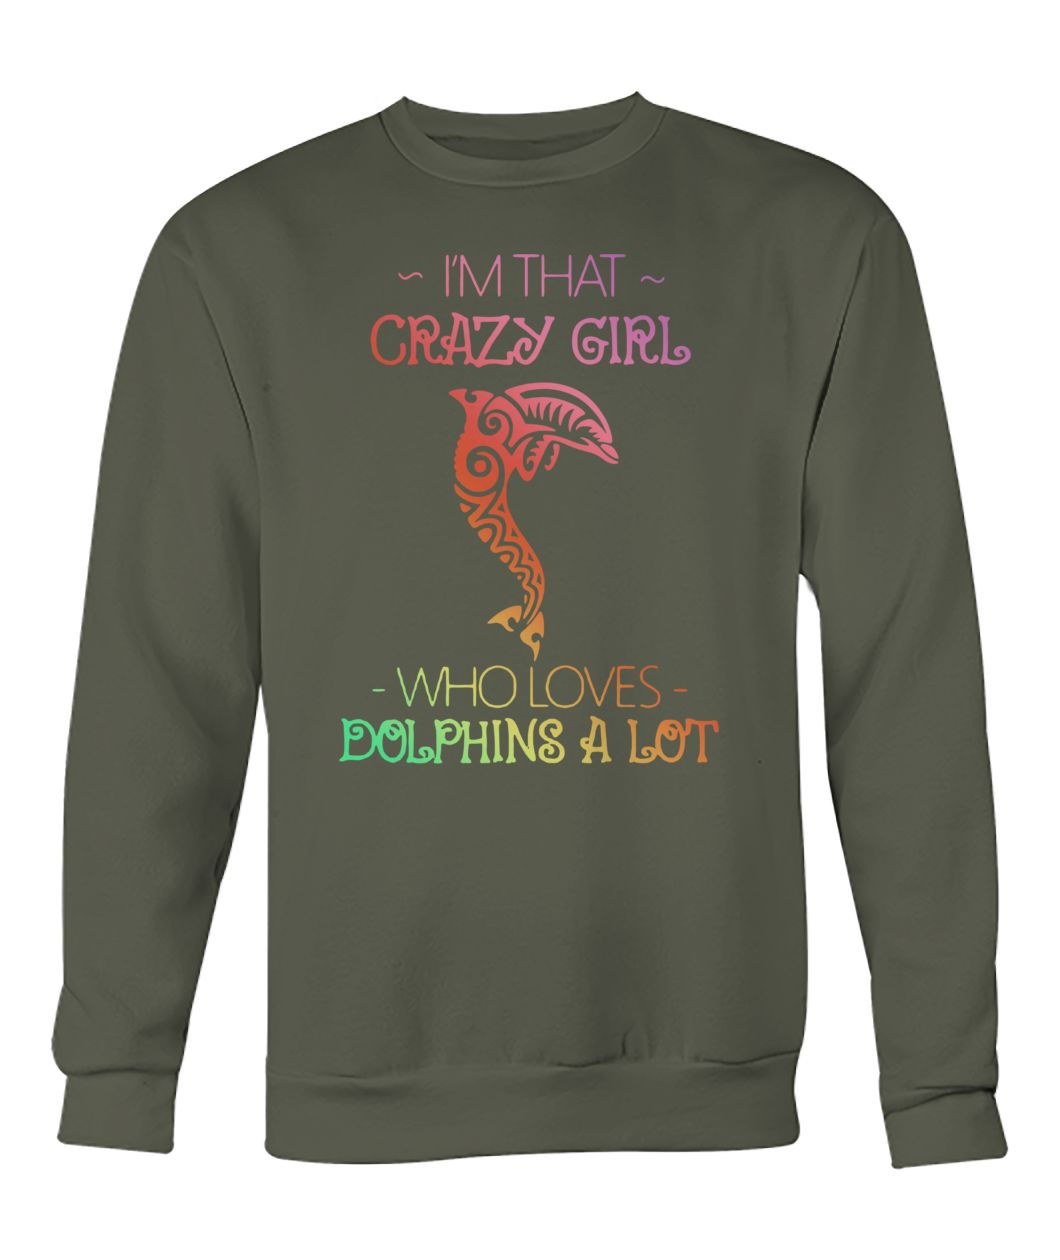 I'm that crazy girl who loves dolphins a lot crew neck sweatshirt